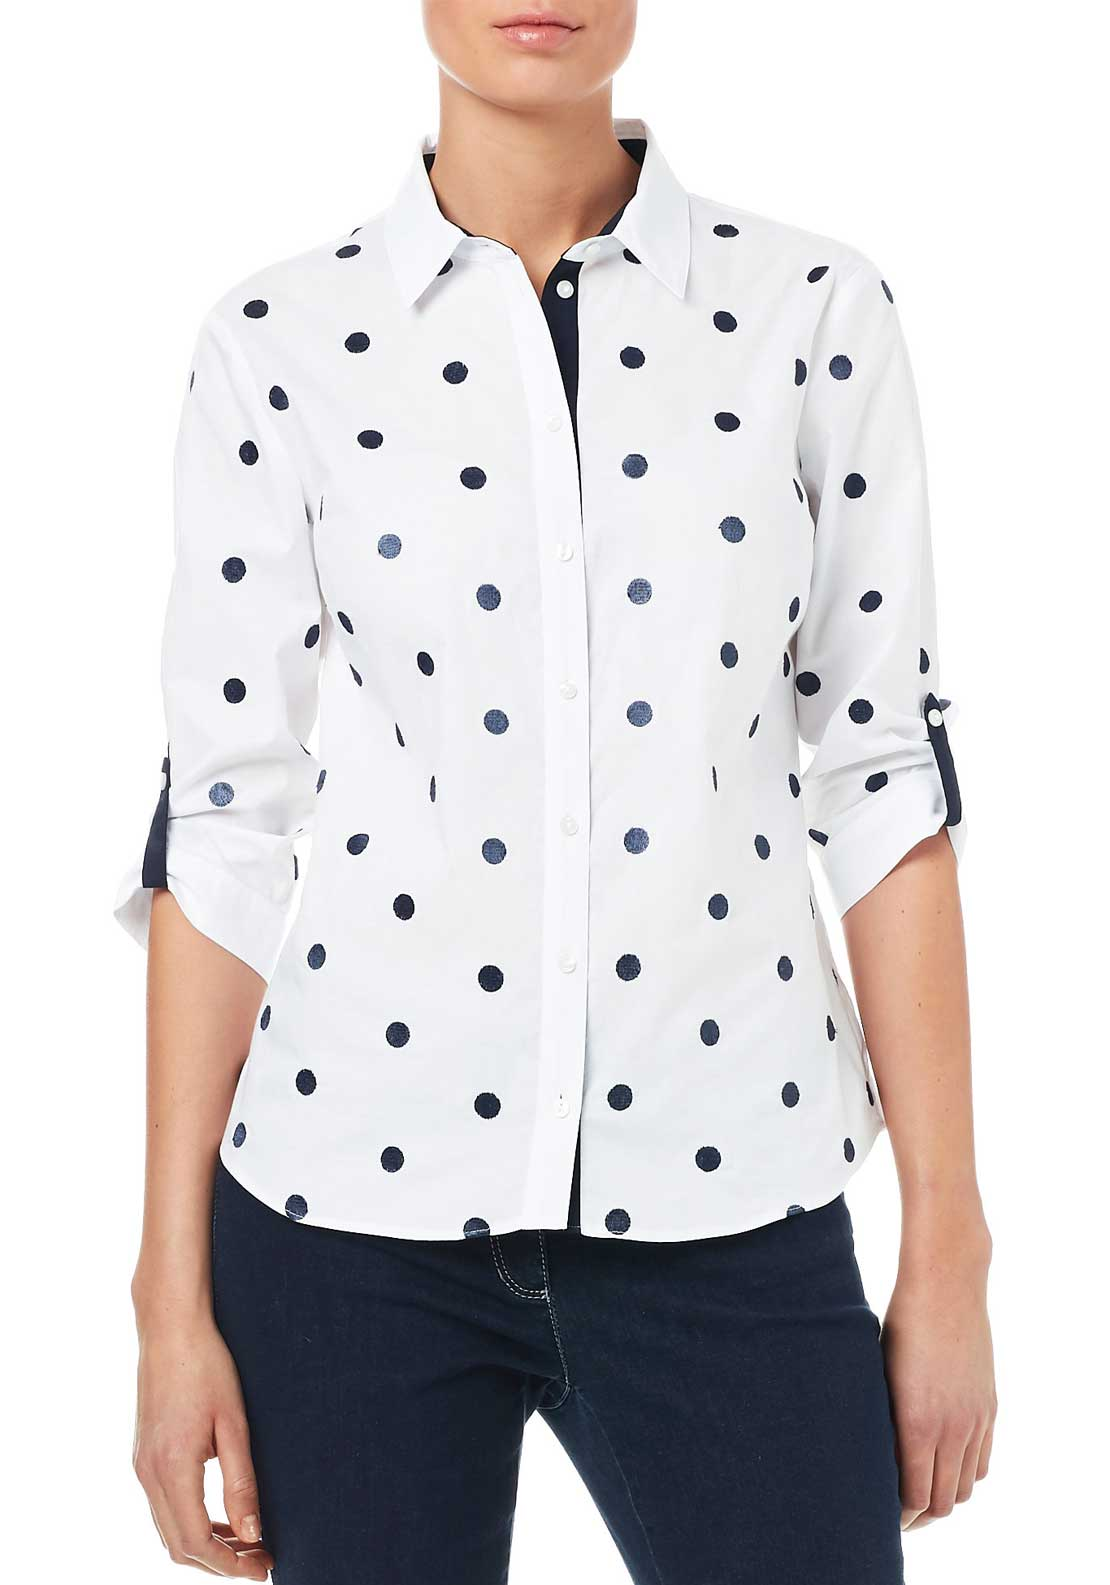 Gerry Weber Polka Dot Blouse, White & Navy